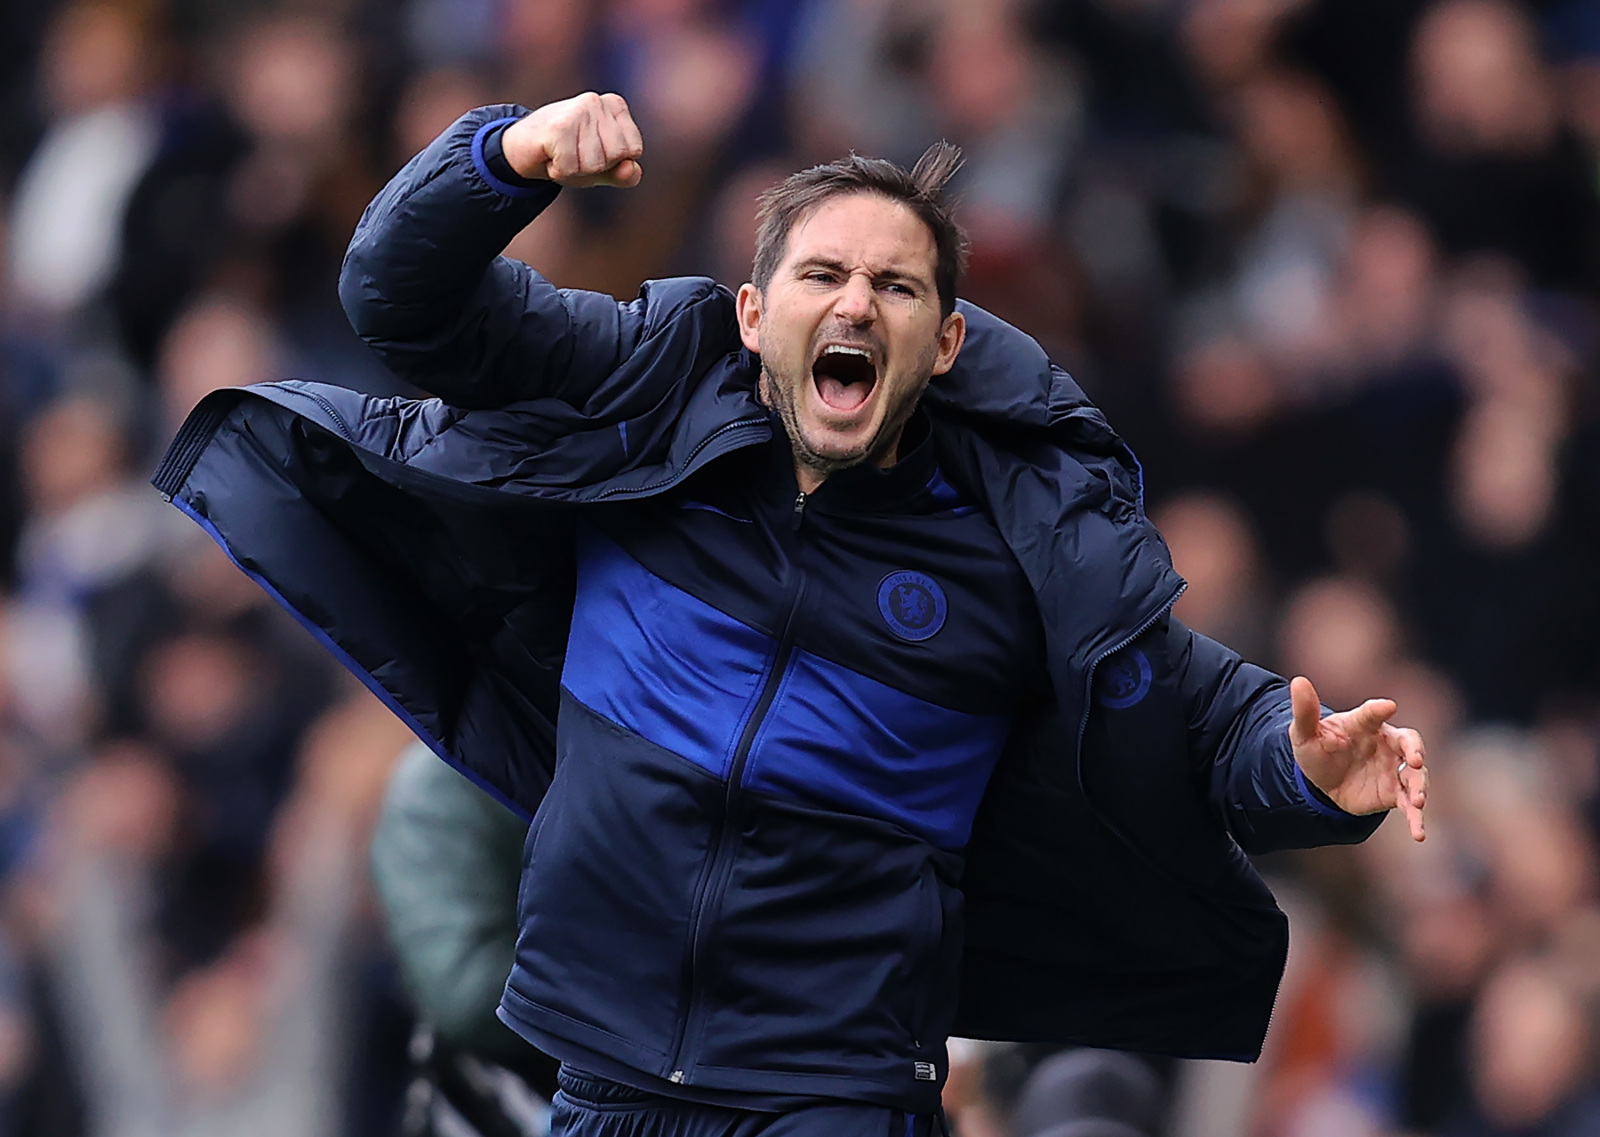 Chelsea's Frank Lampard is imperfect, but has the better of Jose Mourinho